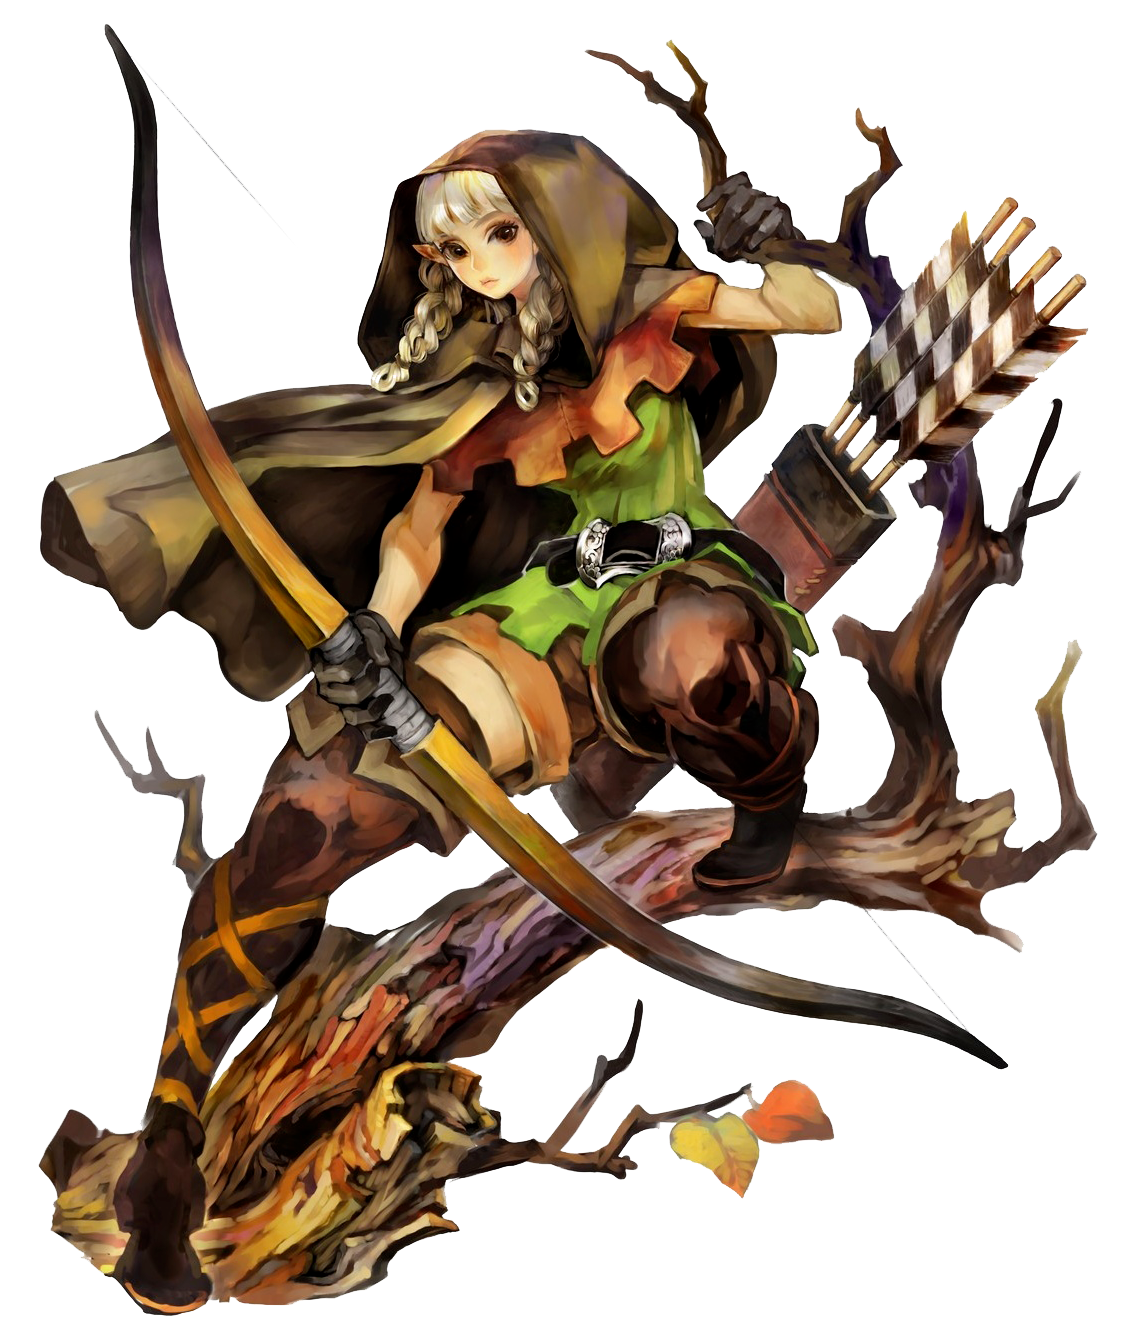 Elf transparent forest. Dragon s crown wiki